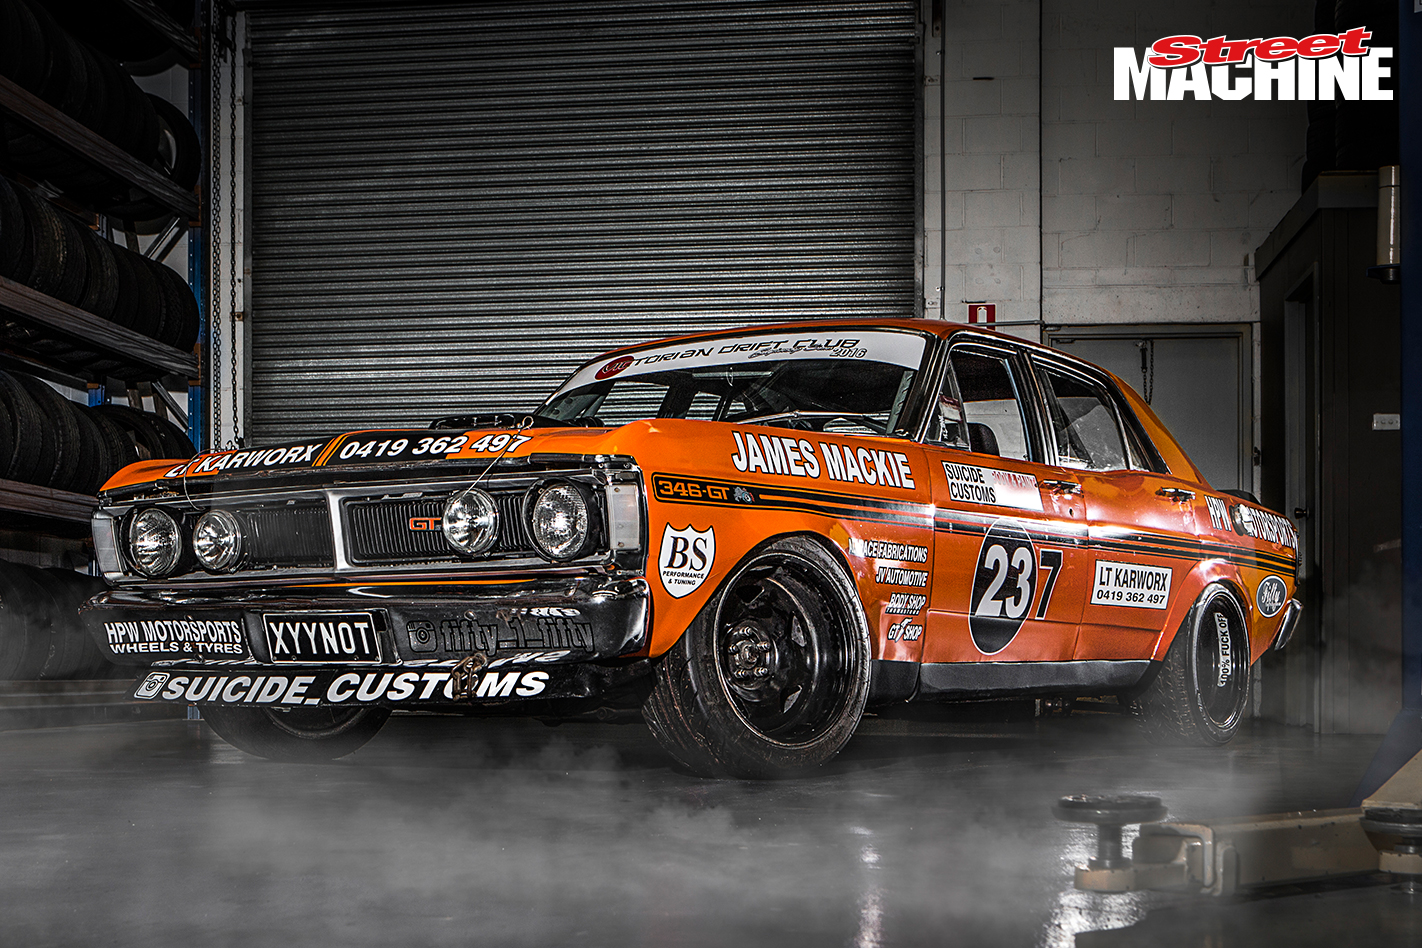 Ford XY Falcon GT Drift XYYNOT 2